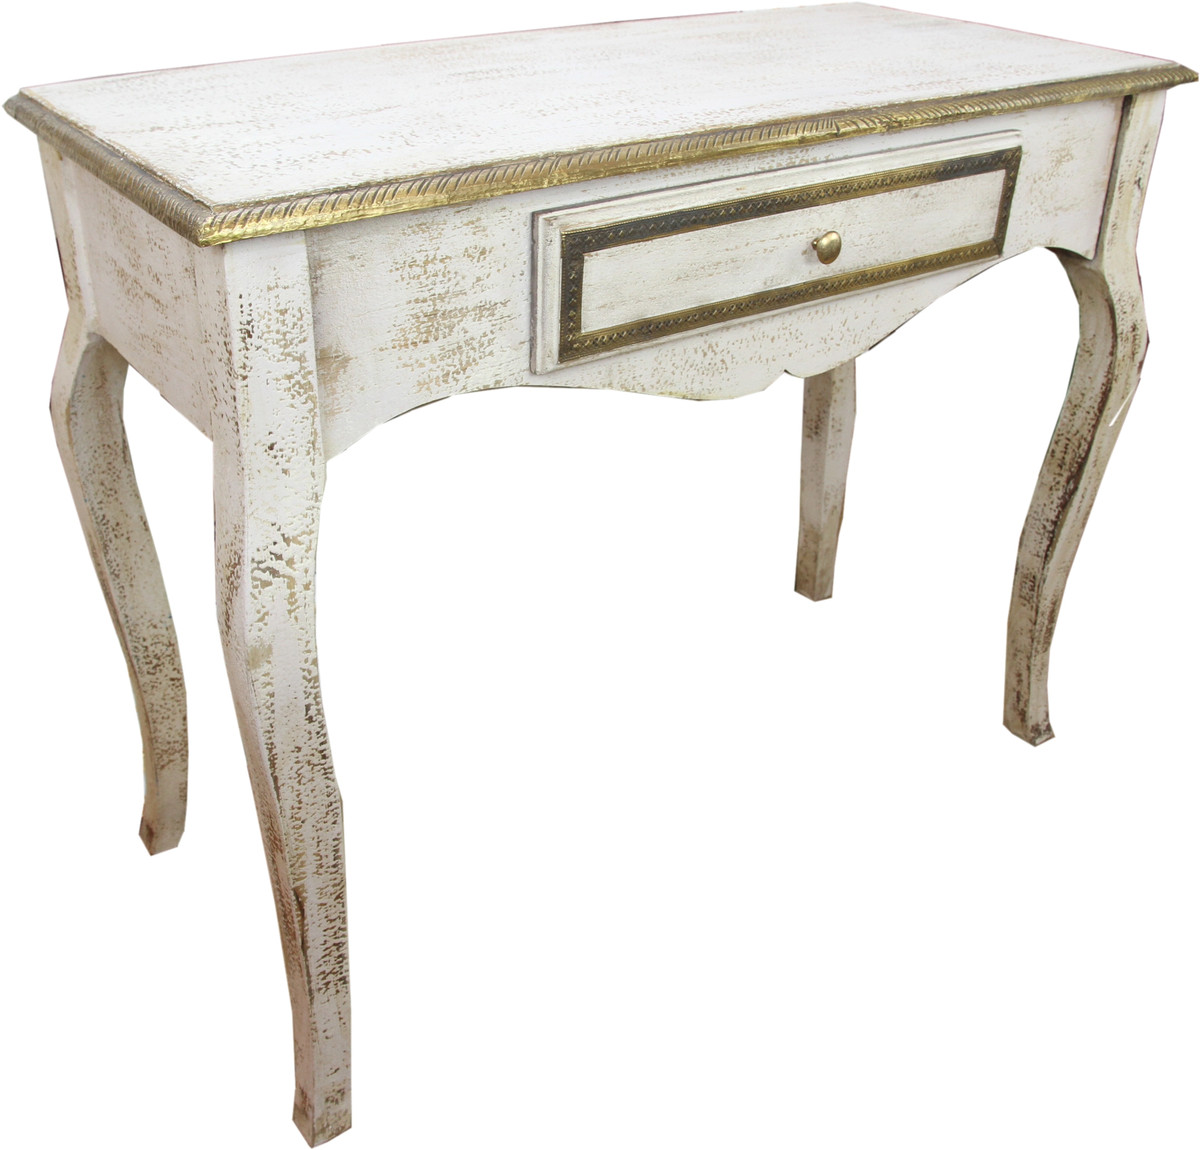 Casa Padrino Baroque Console Table Antique Style Antique White